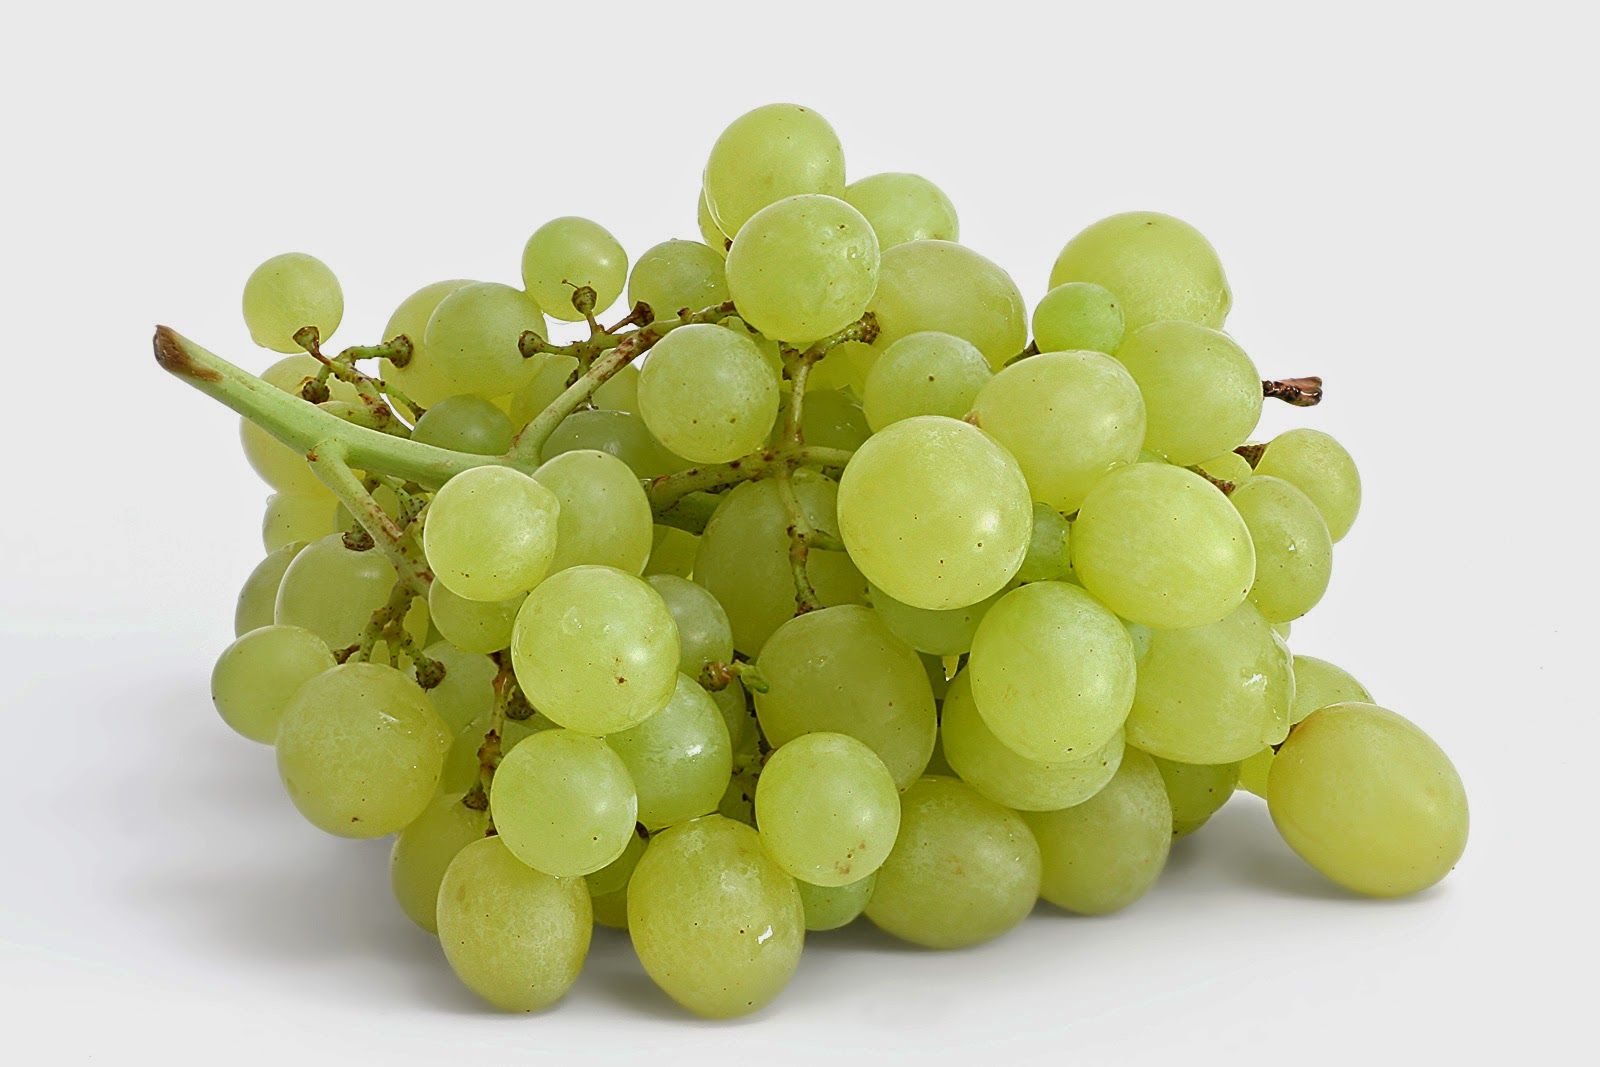 New SavingStar Coupon: Get 20% Back When You Buy Grapes!